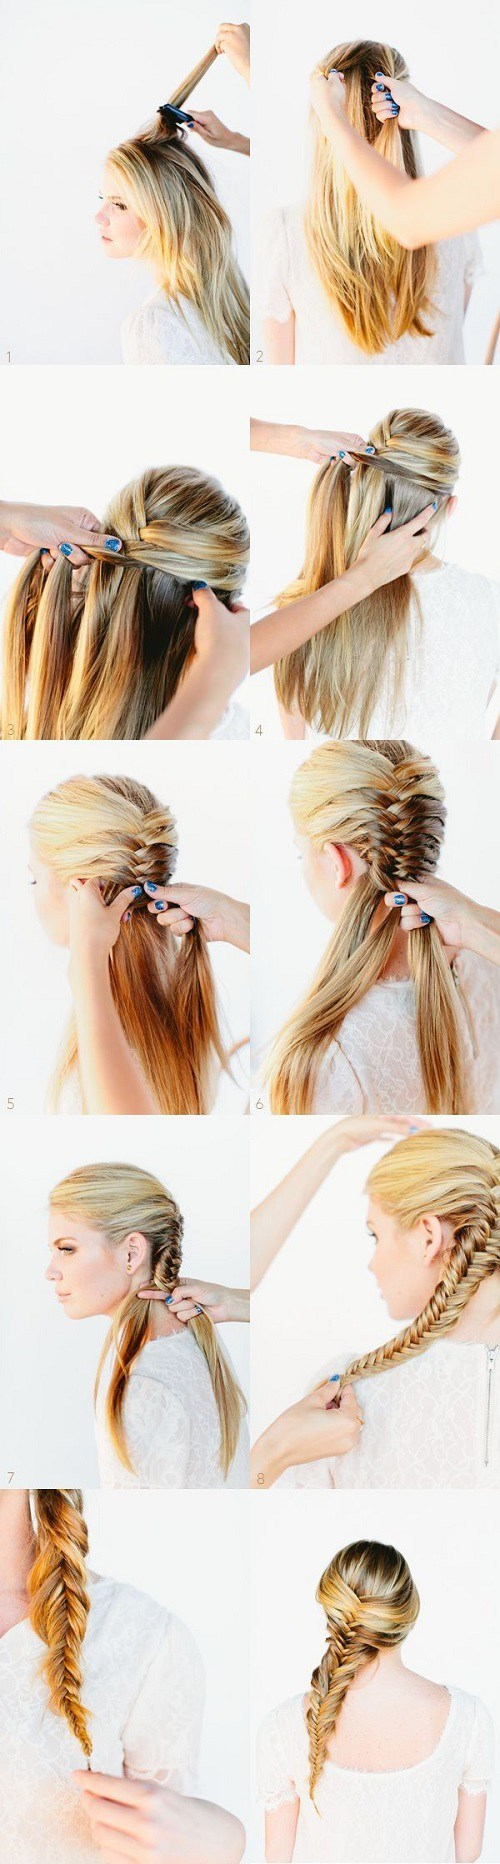 4205_8-side-fishtail-hair-tutorial.jpg (182.61 Kb)